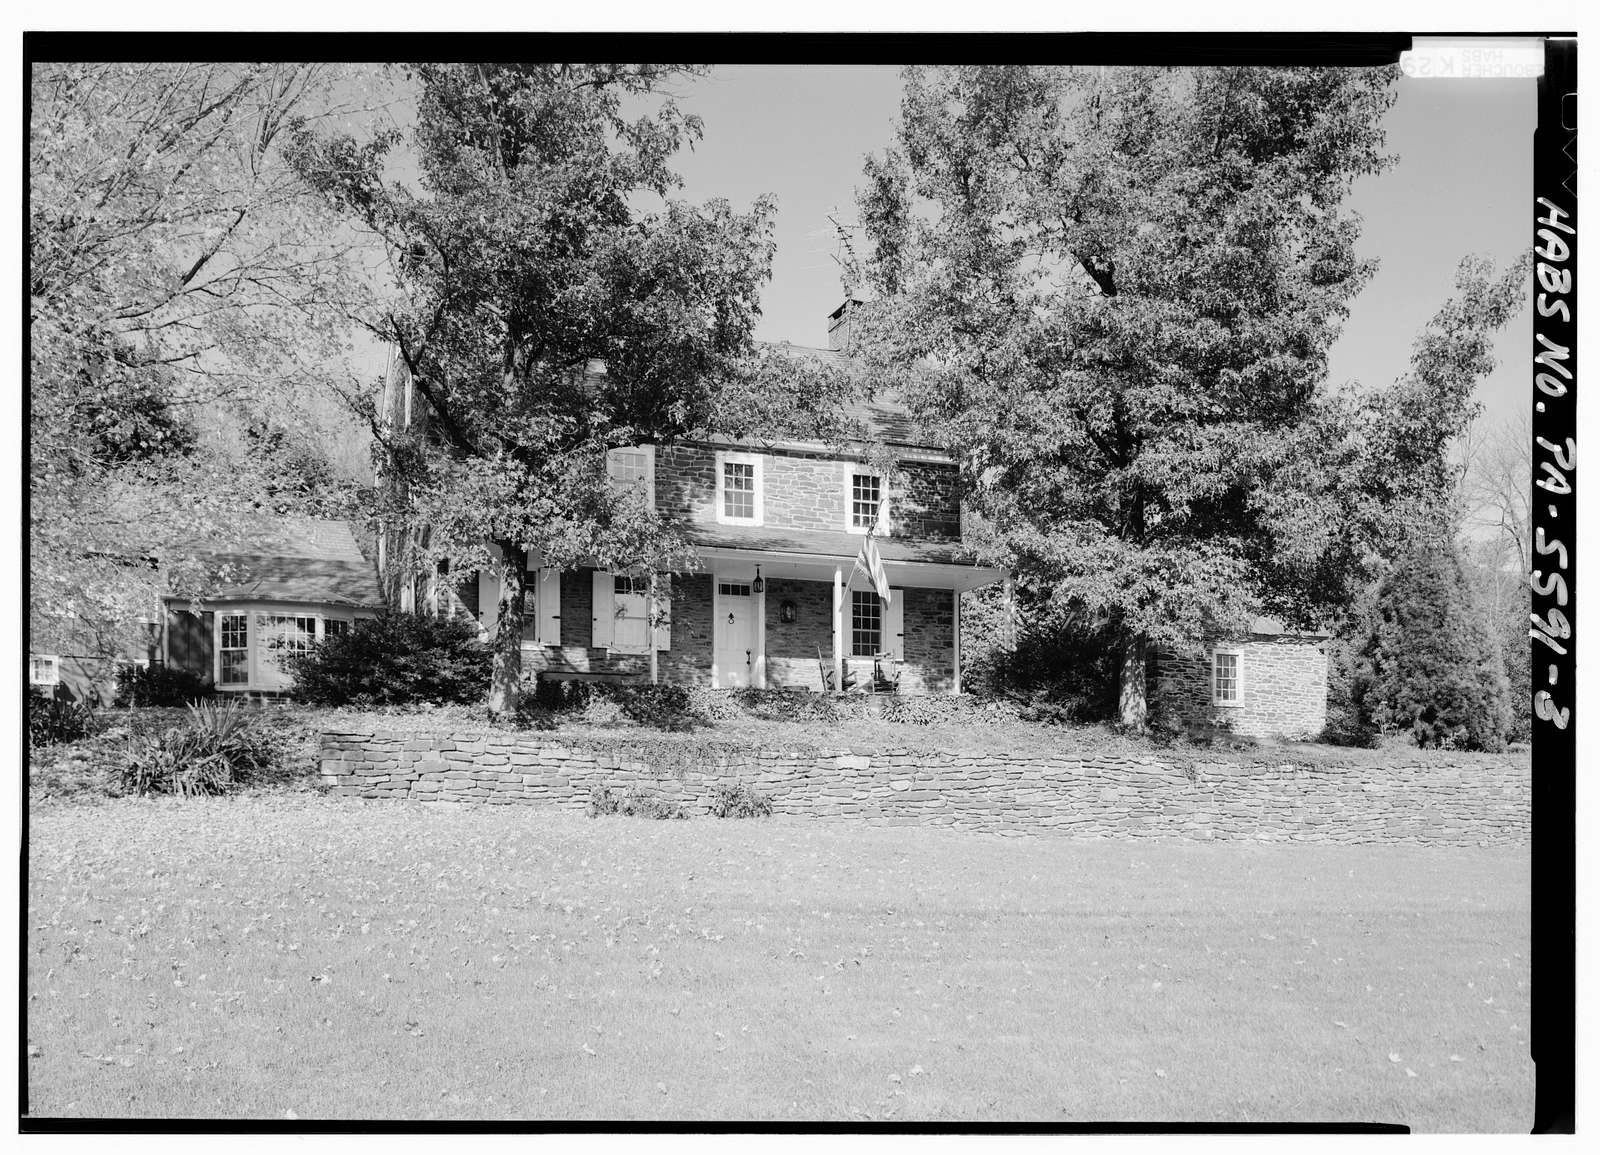 High Farm, House, Creek Road, 1 mile West of Easton Road, Pipersville, Bucks County, PA